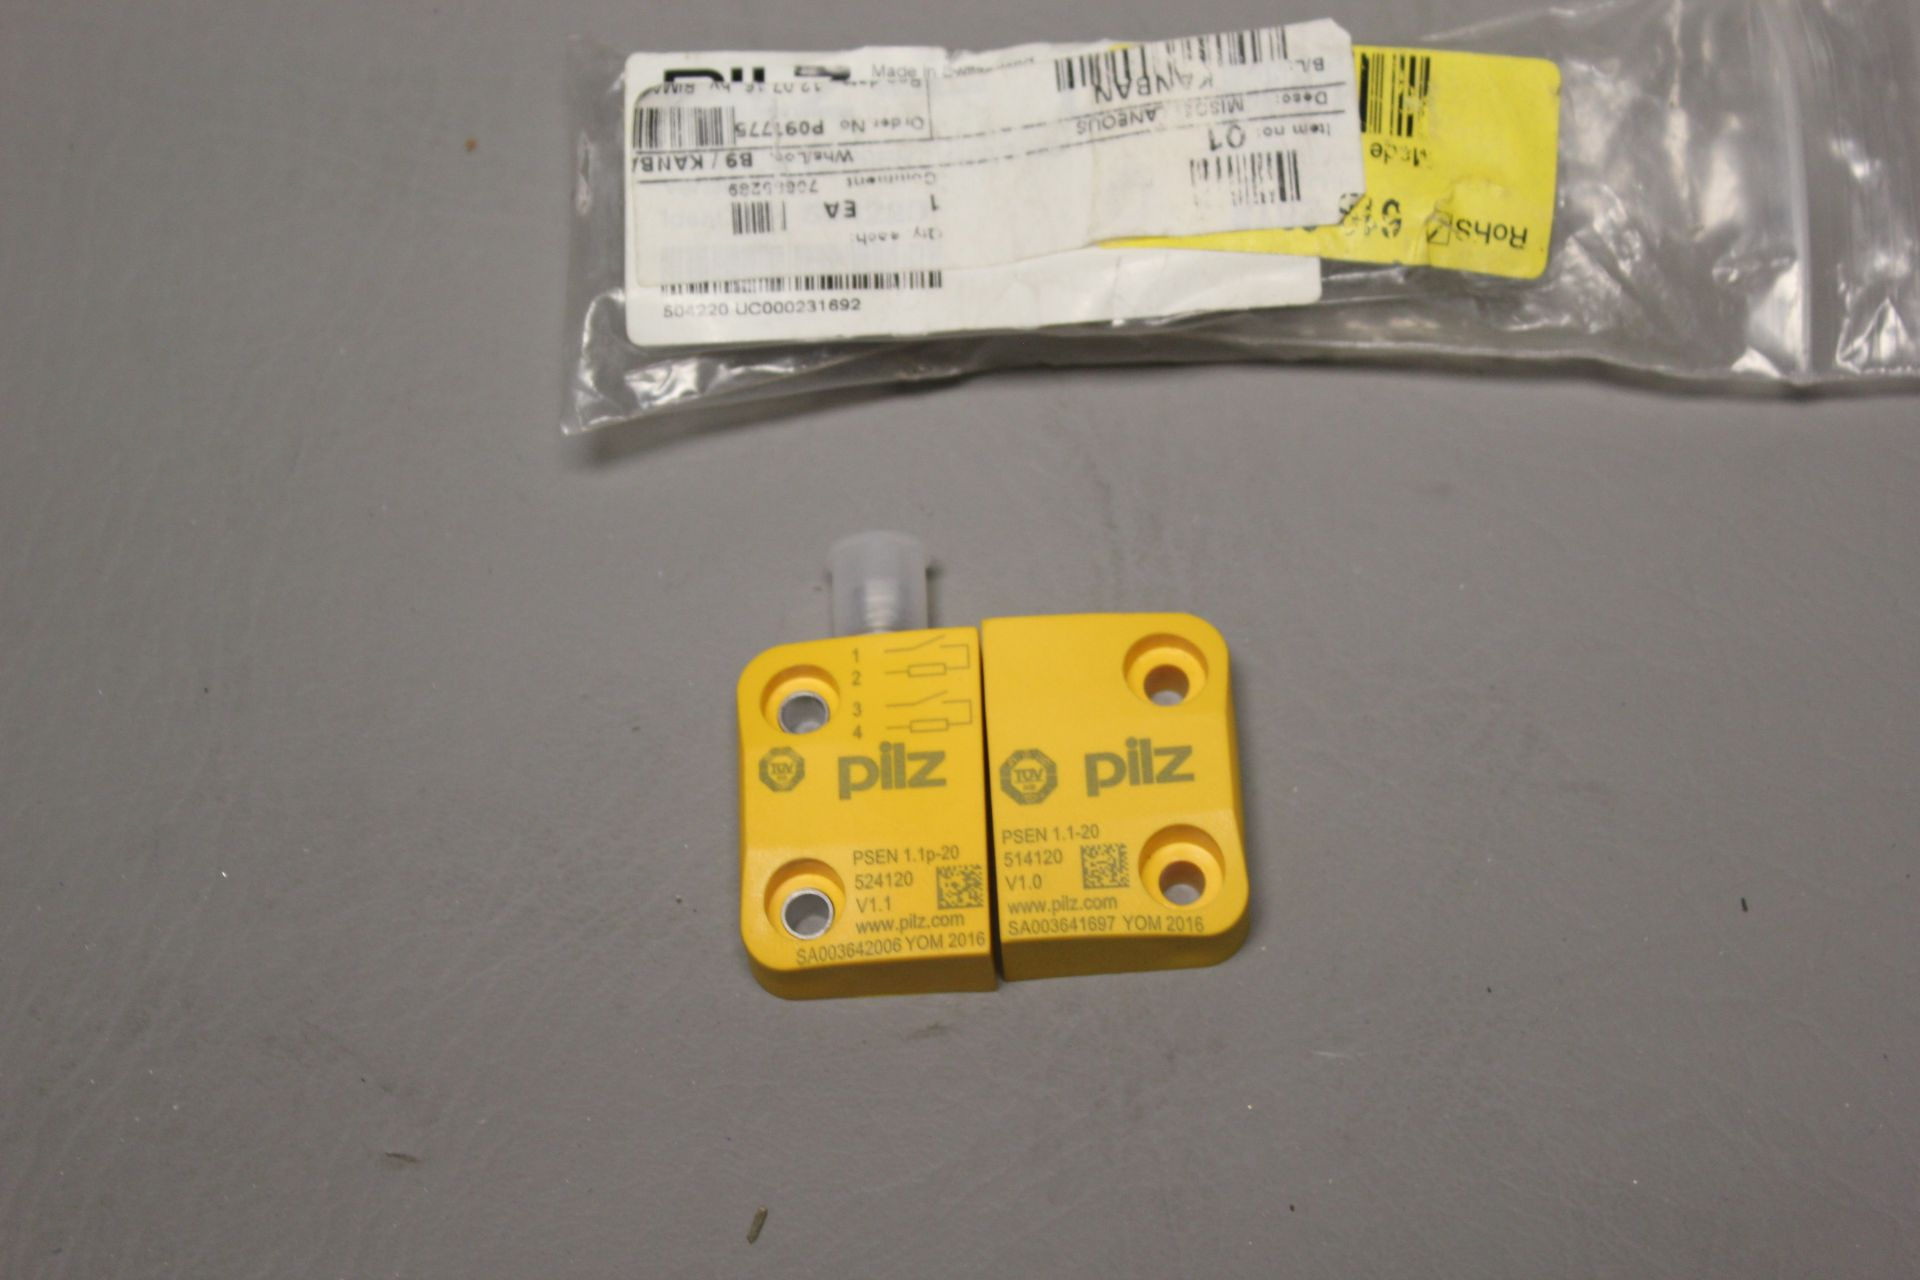 NEW PILZ MAGNETIC SAFETY SWITCH - Image 3 of 4